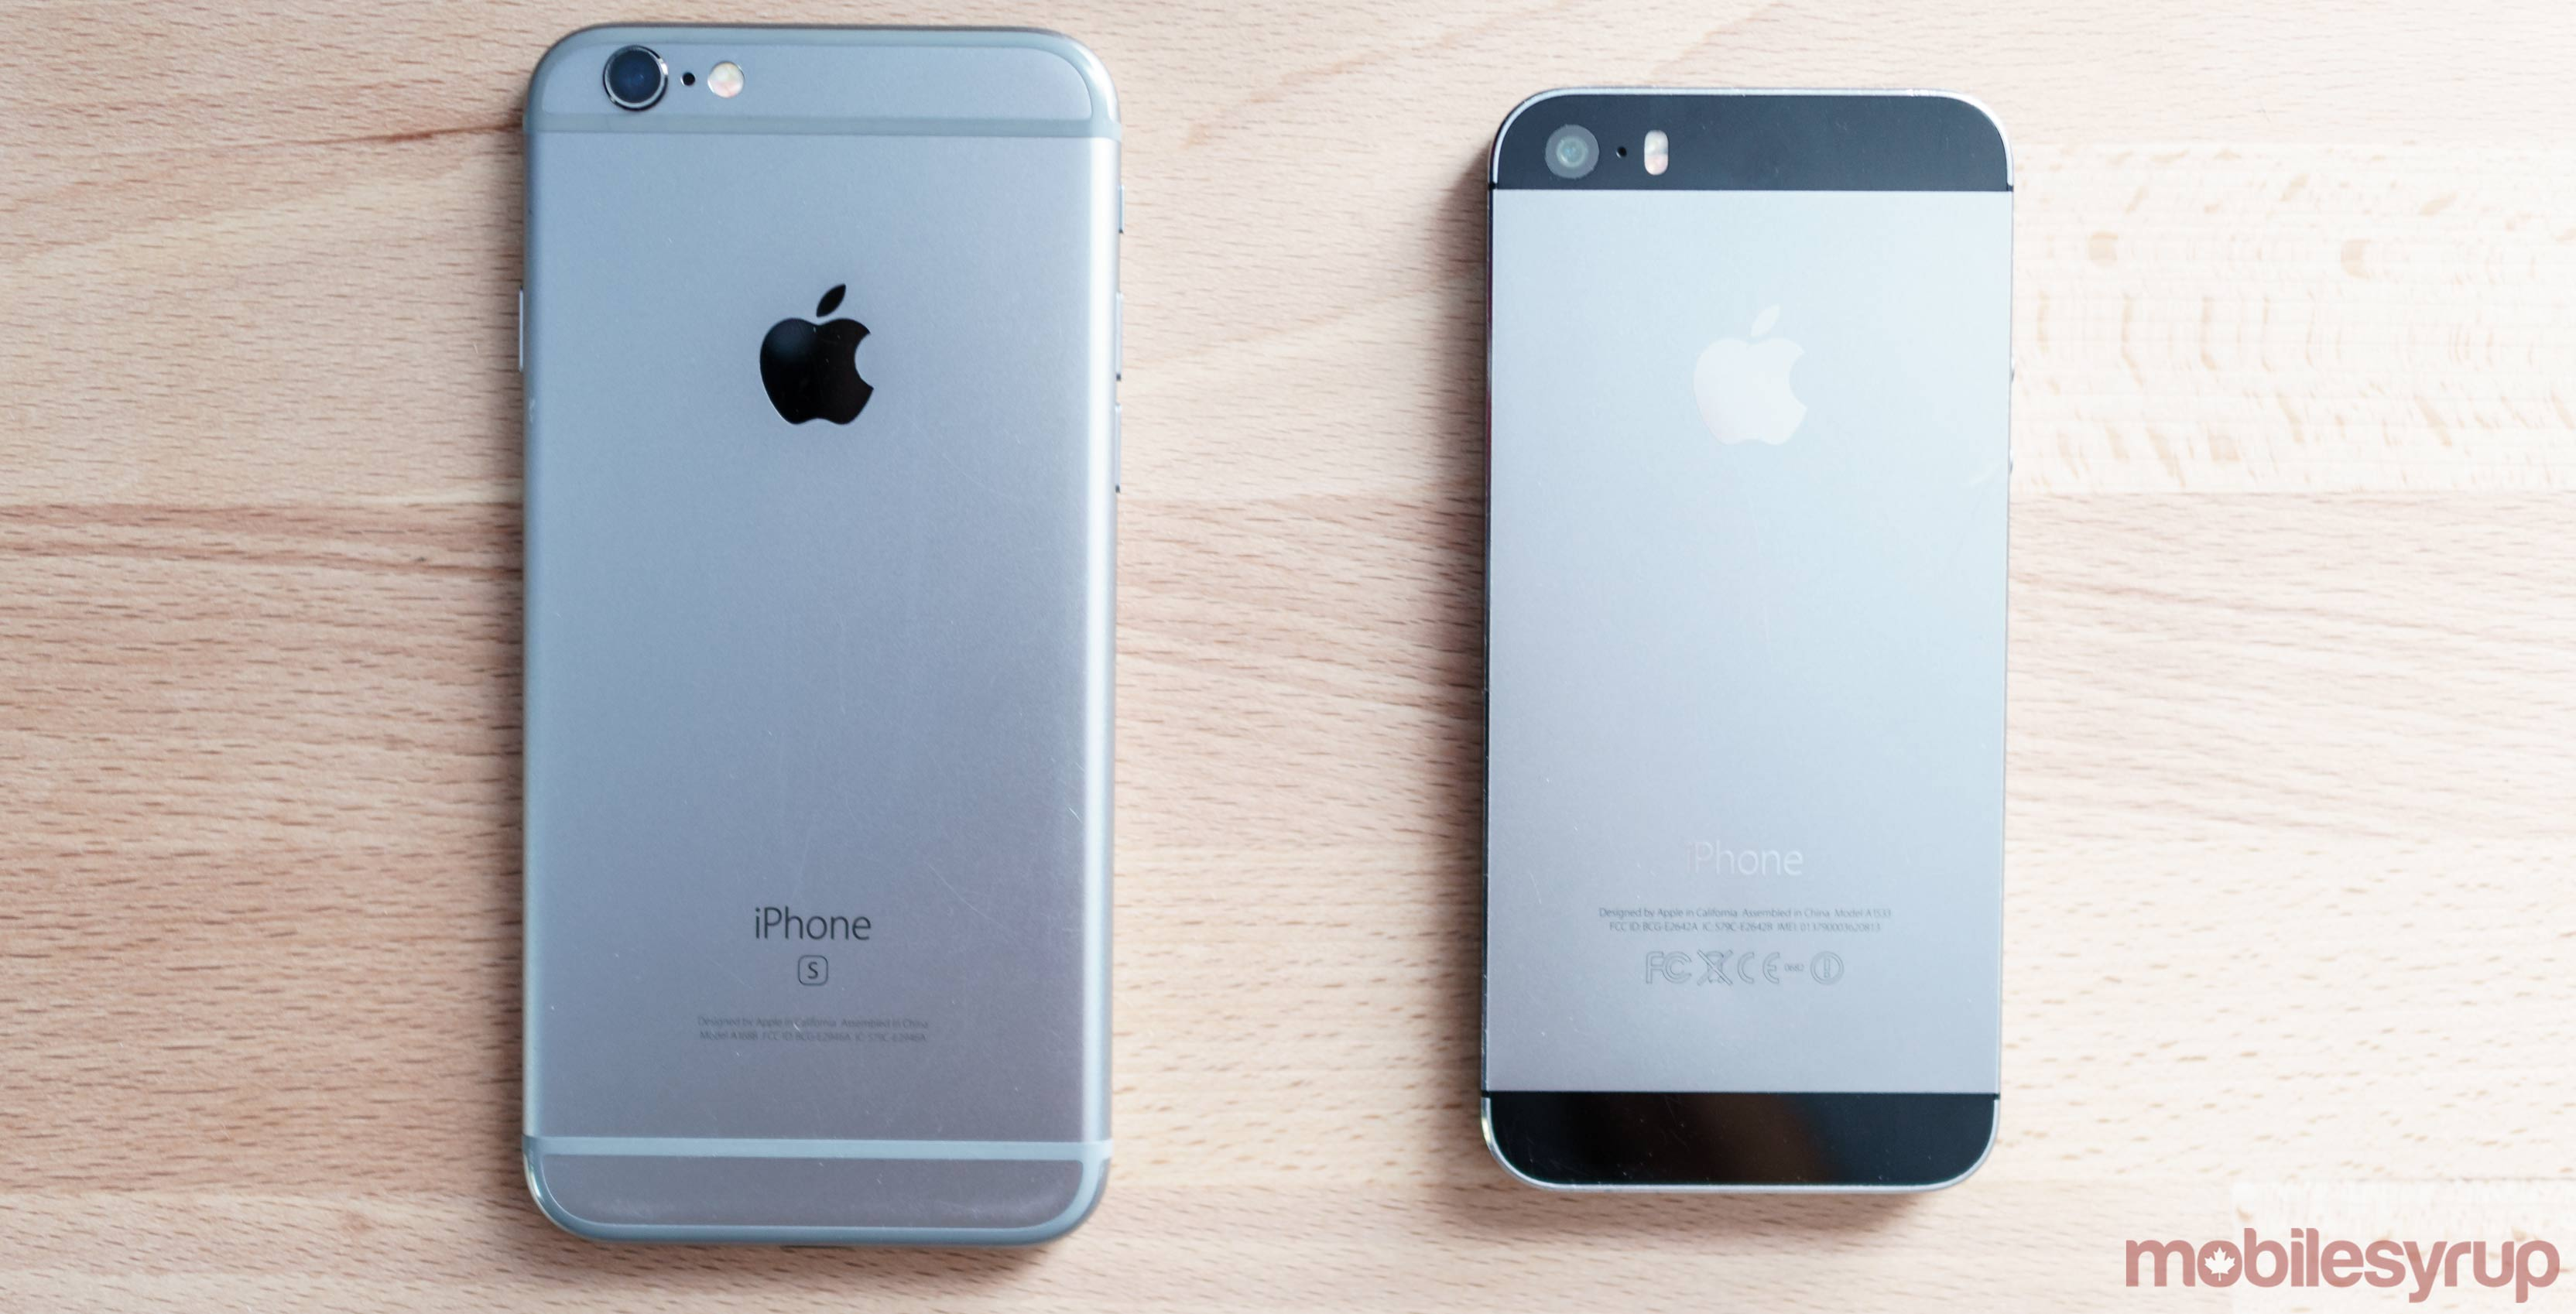 iPhone 5S and iPhone 6S side by side